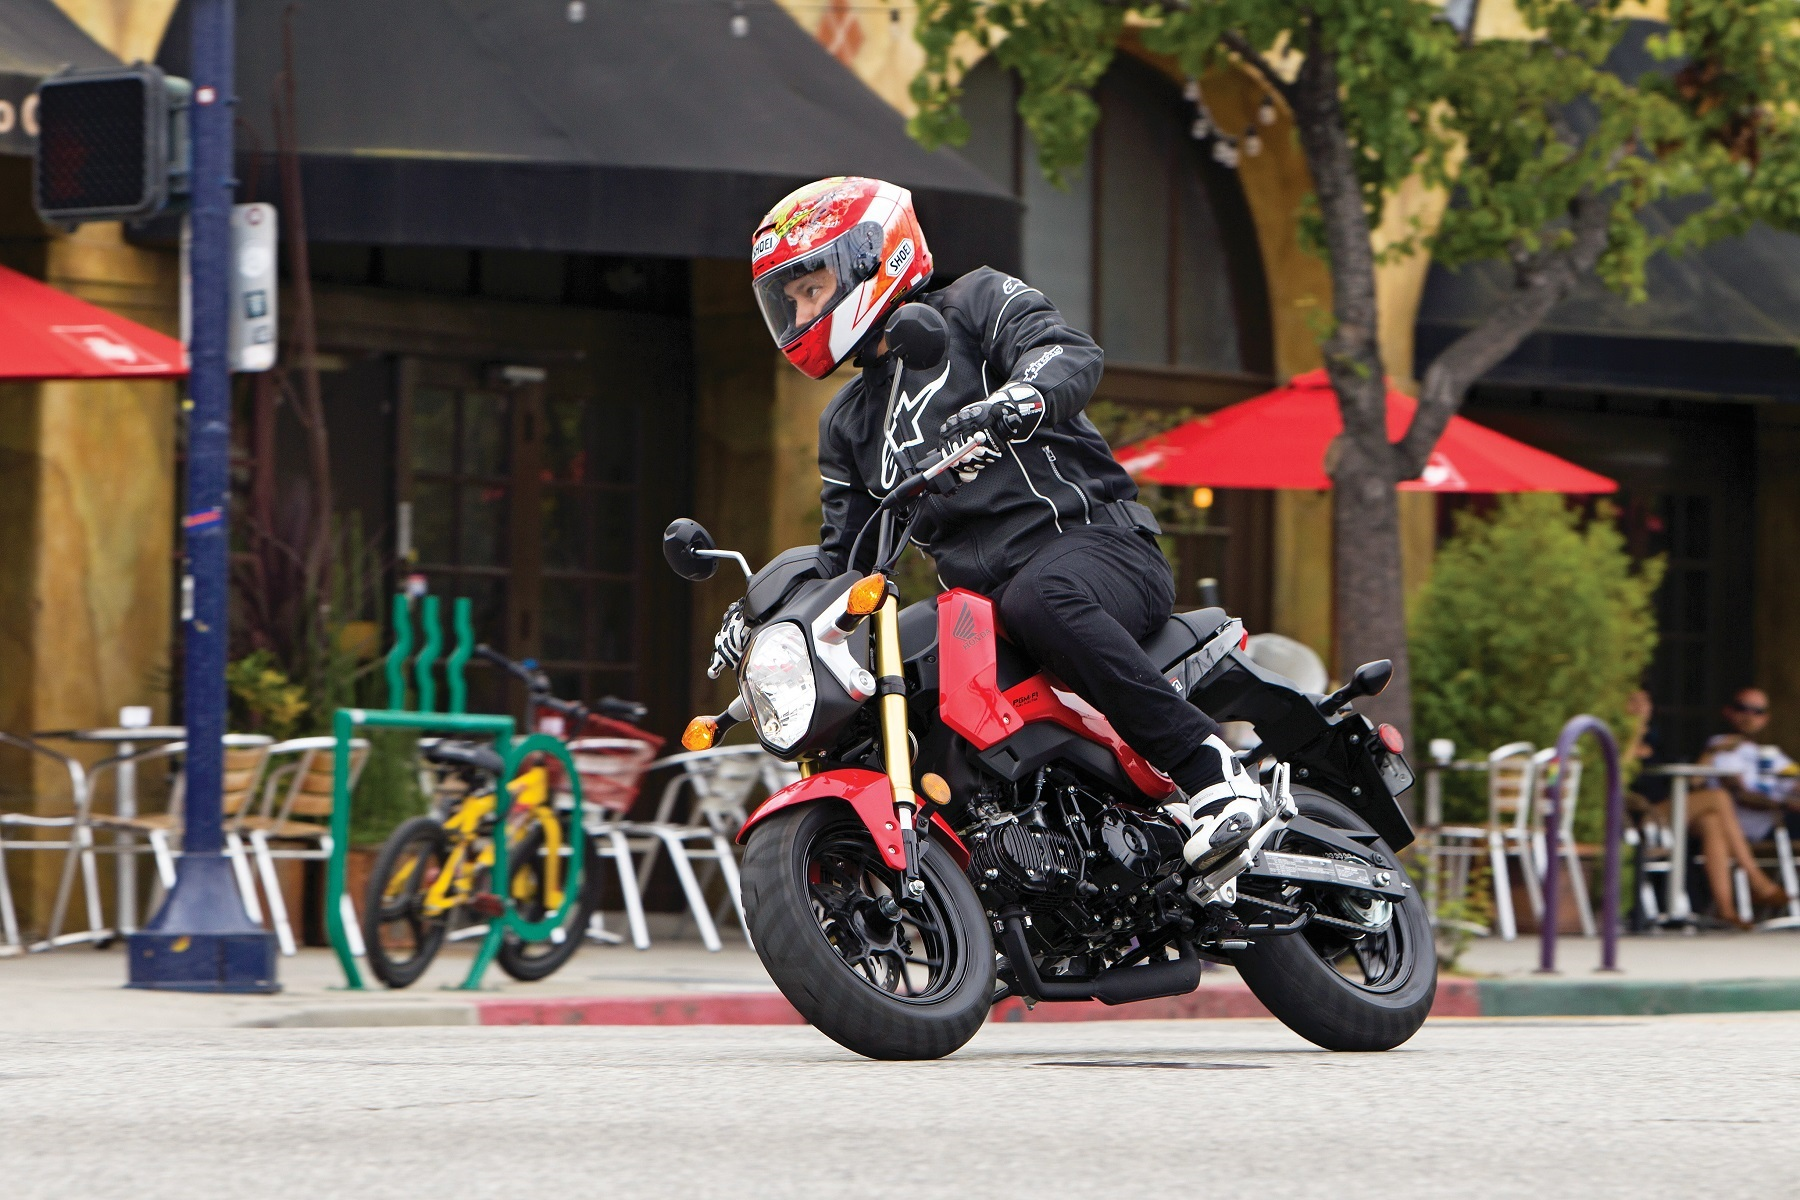 Honda MSX125 Grom: A Cult Scooter - 2-Wheeling Today